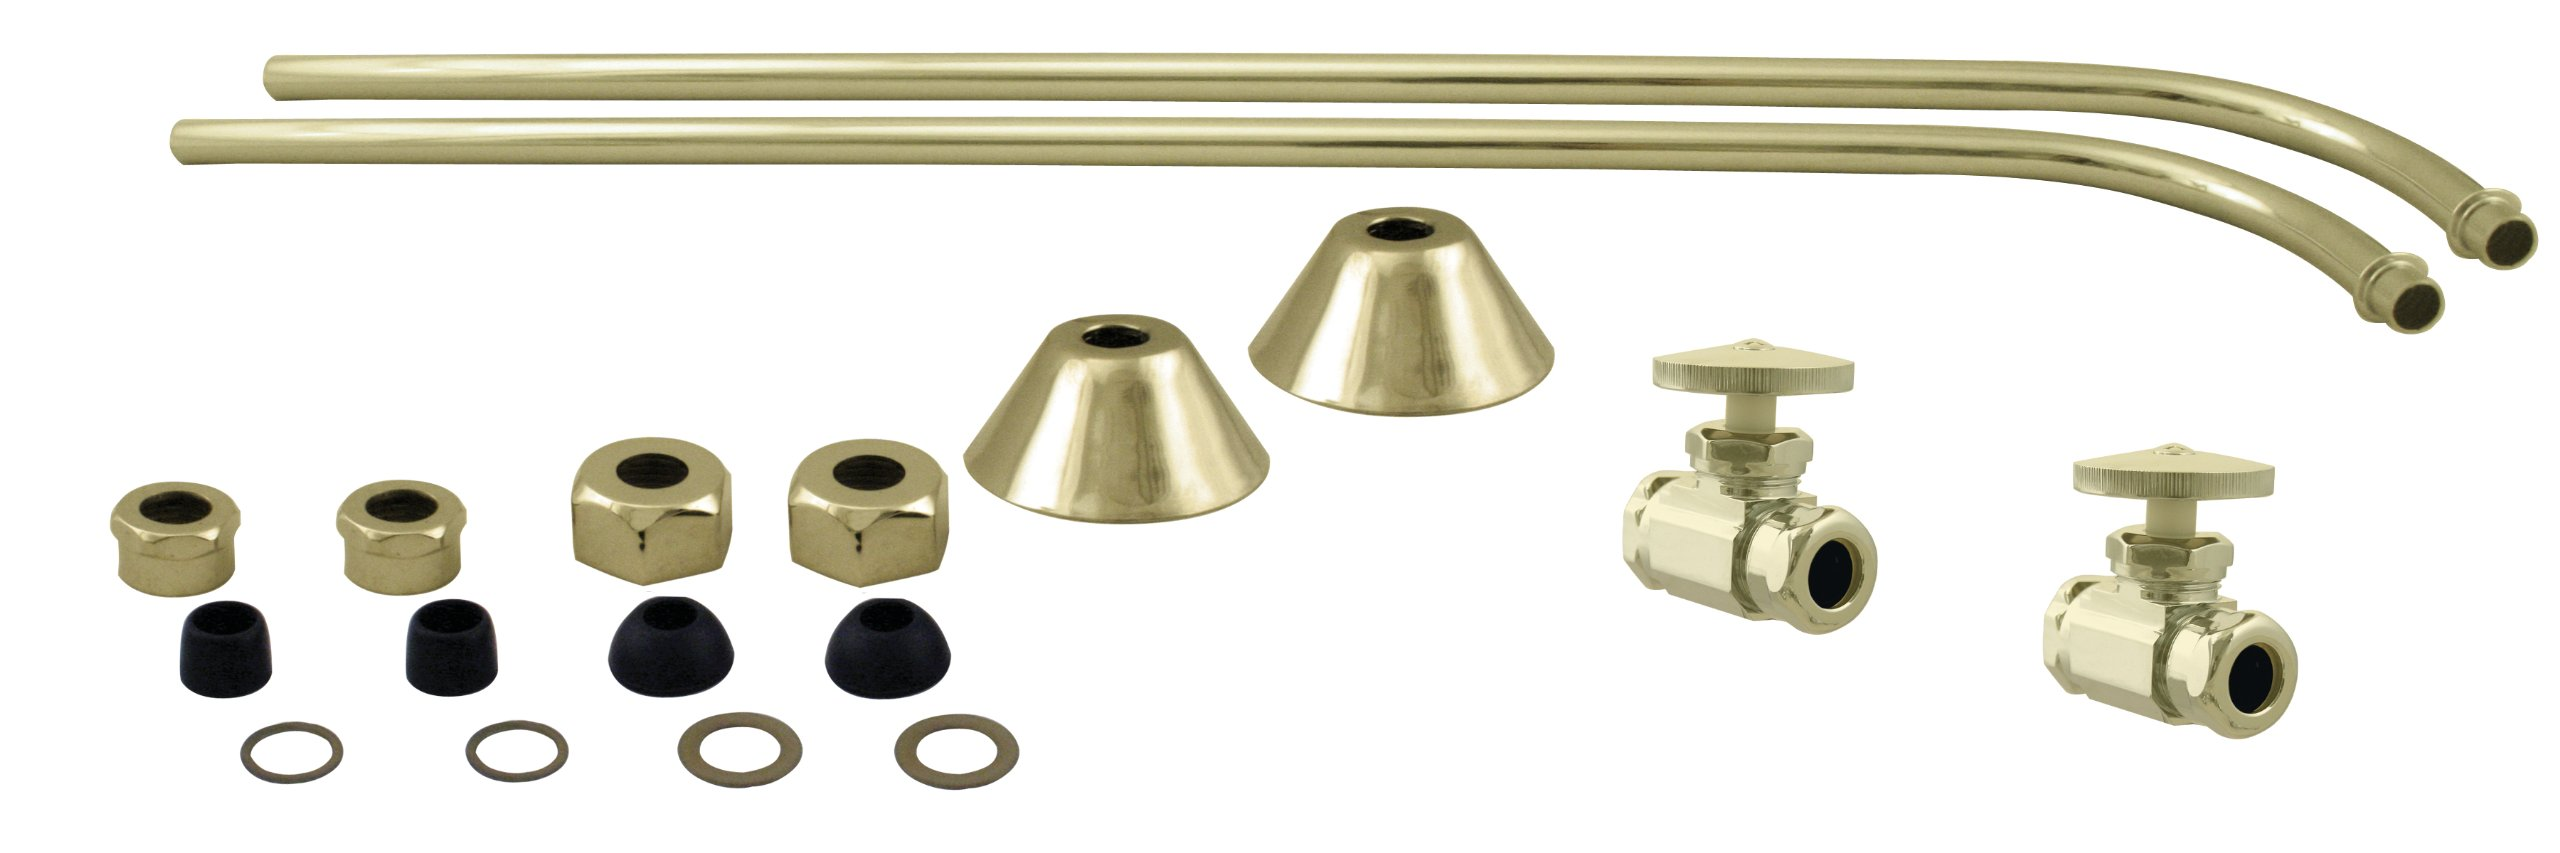 Westbrass 1/2'' IPS Stops & Single Offset Bath Supply with Round Handles, Polished Brass, D135-108-01 by Westbrass (Image #1)